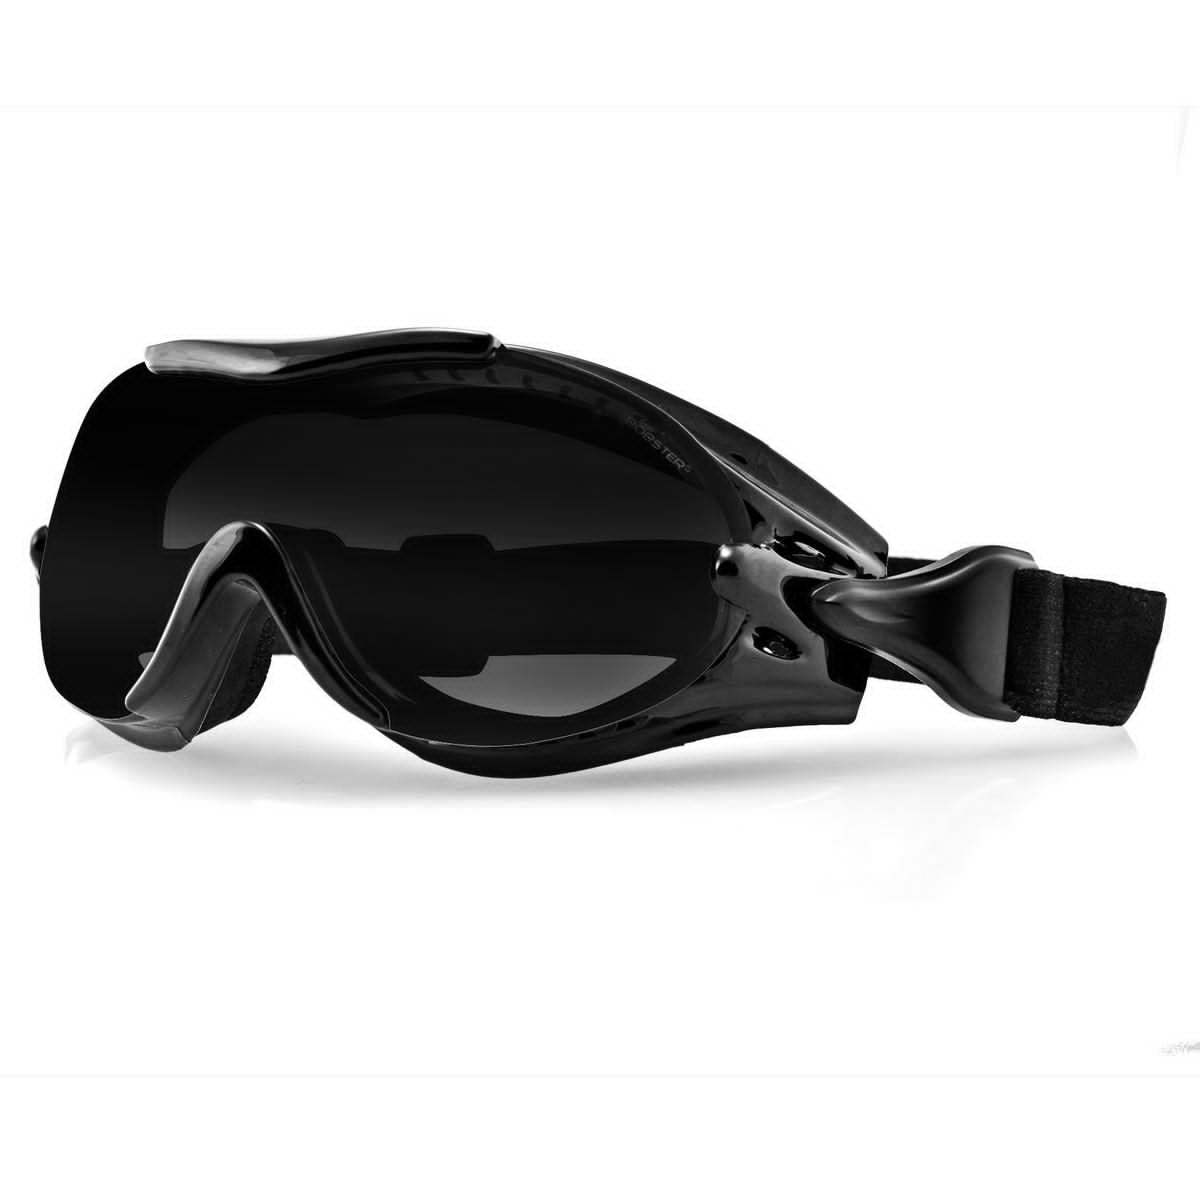 Bobster Phoenix OTG Riding Goggles